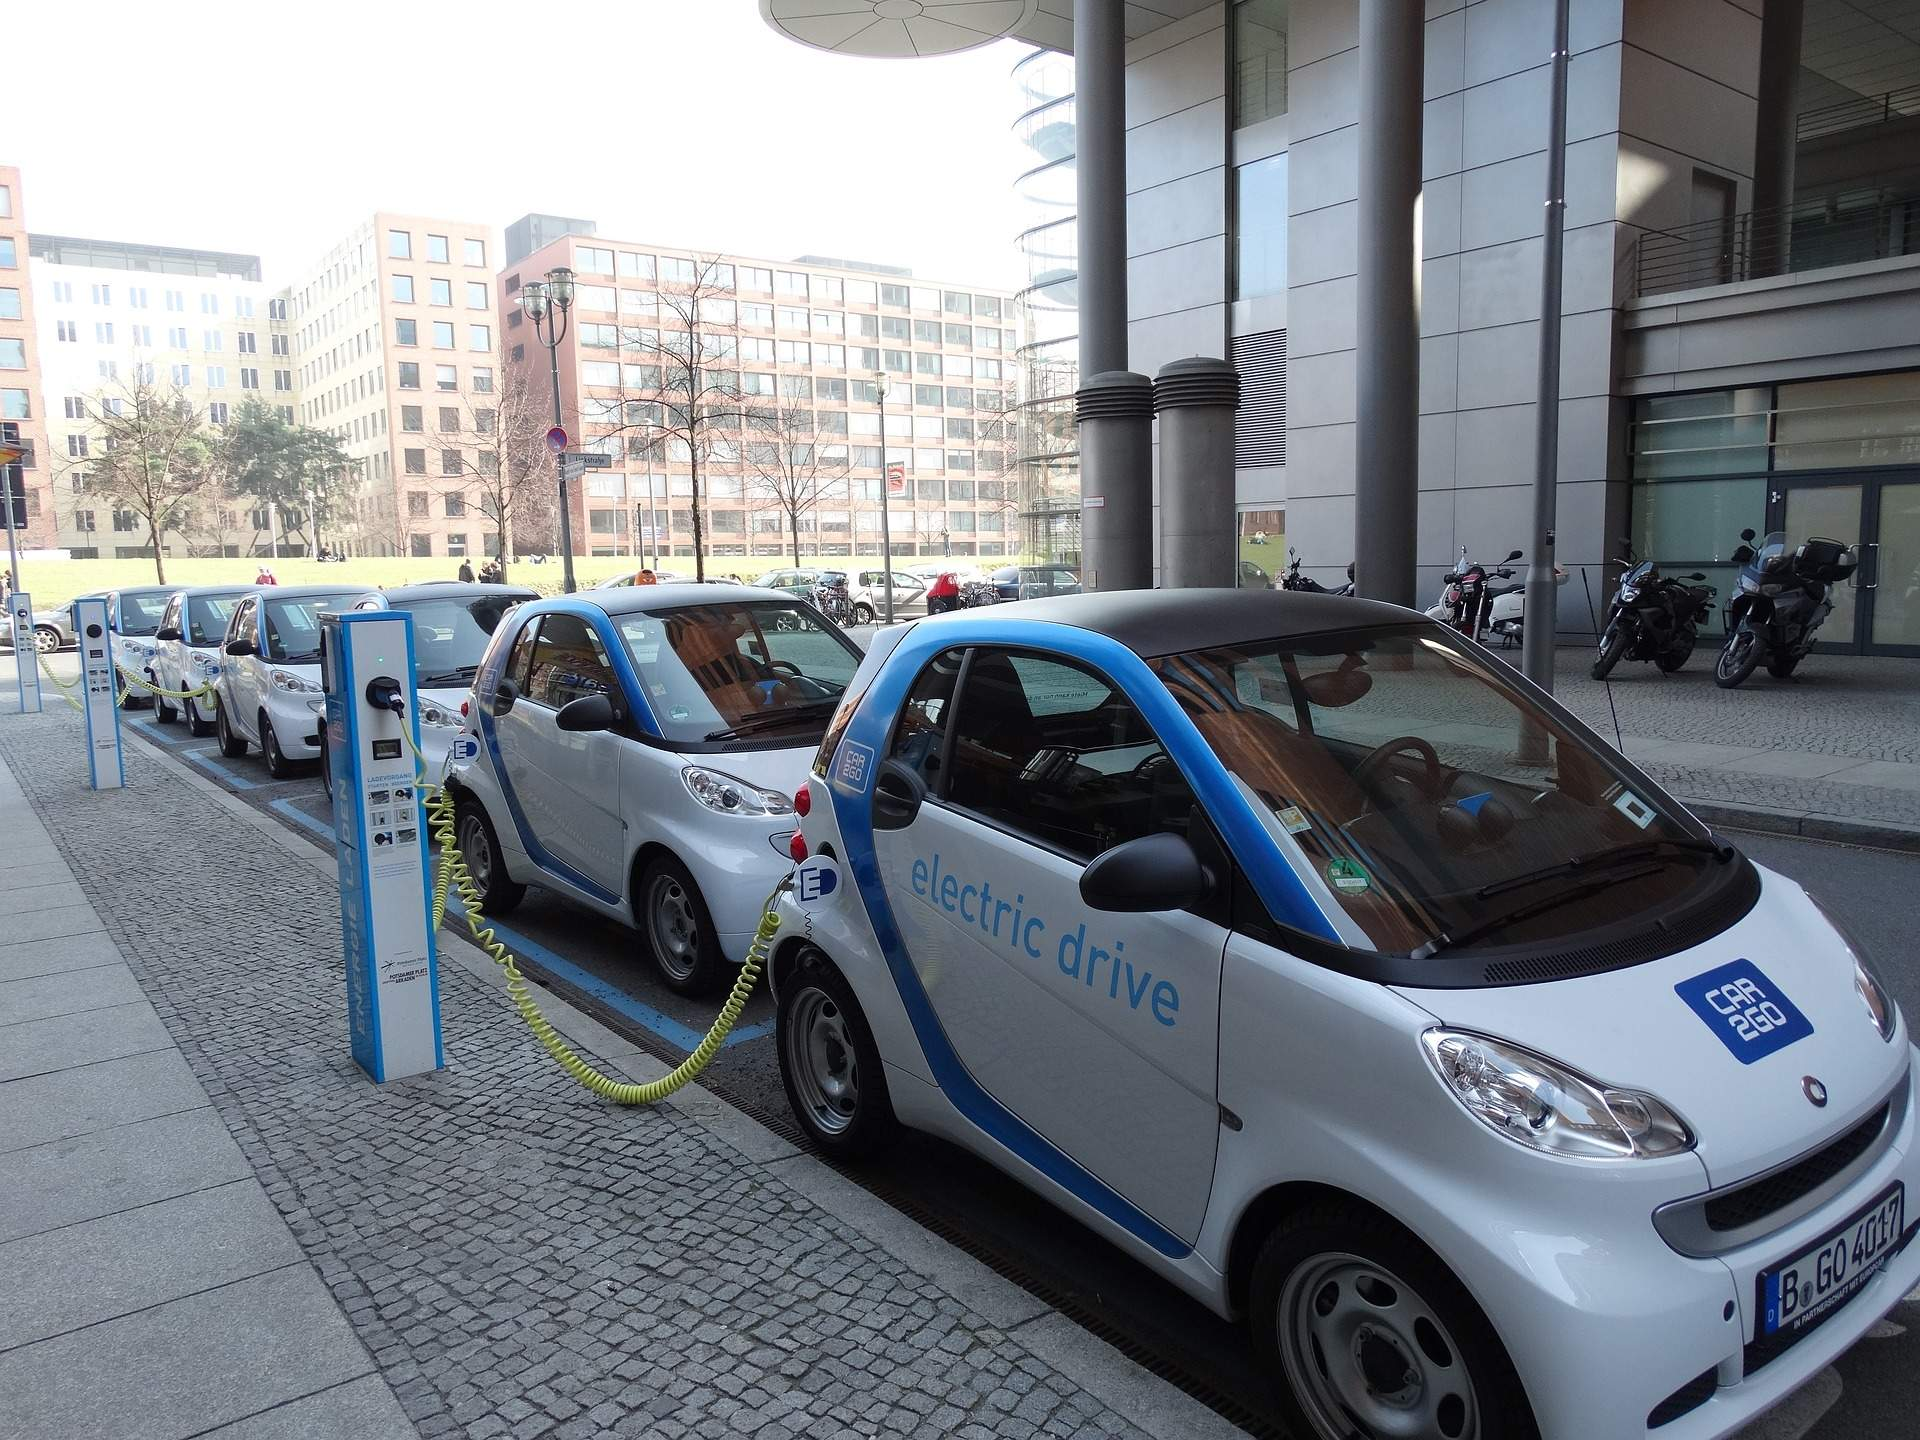 EV infrastructure 'failing to keep pace' with growing popularity